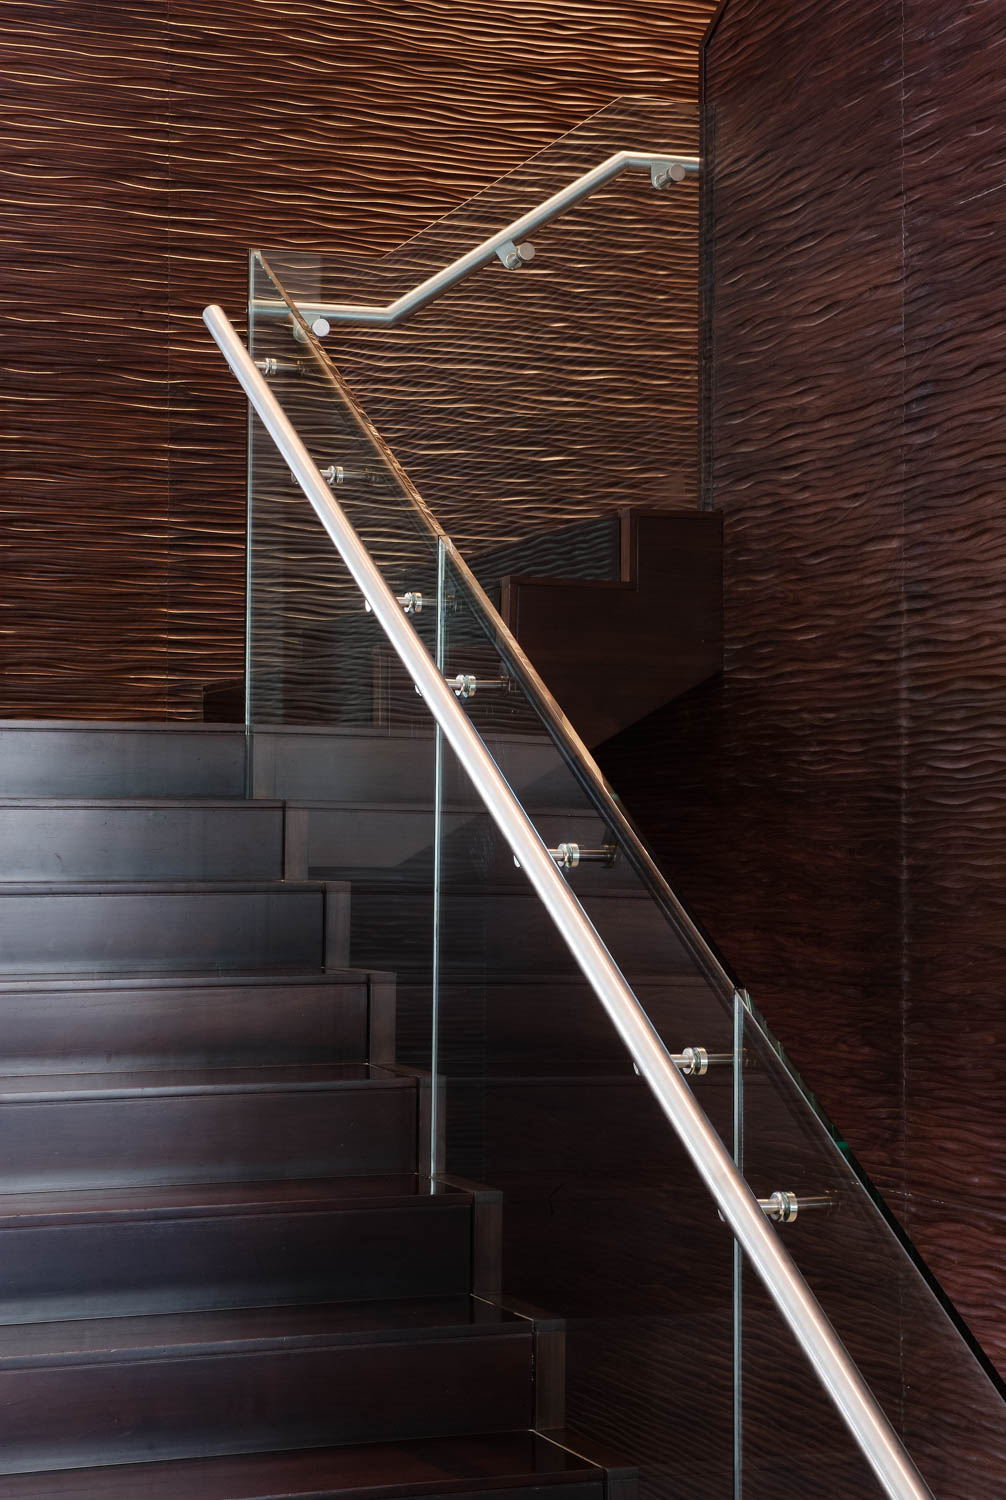 Interior Photography detailing a stairway in the Al Manzil hotel, Dubai